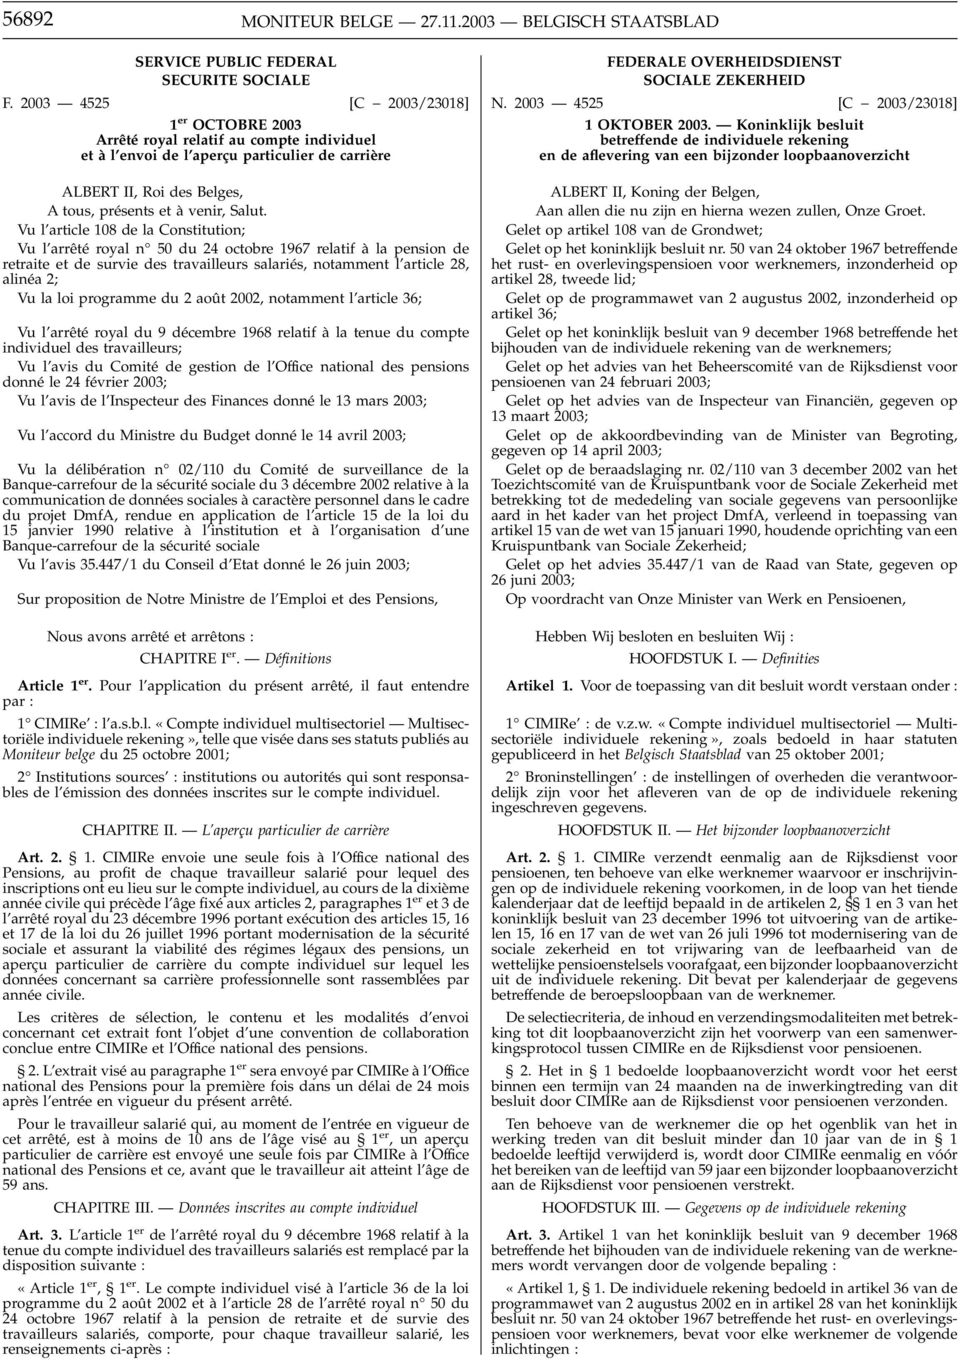 Vu l article 108 de la Constitution; Vu l arrêté royal n 50 du 24 octobre 1967 relatif à la pension de retraite et de survie des travailleurs salariés, notamment l article 28, alinéa 2; Vu la loi